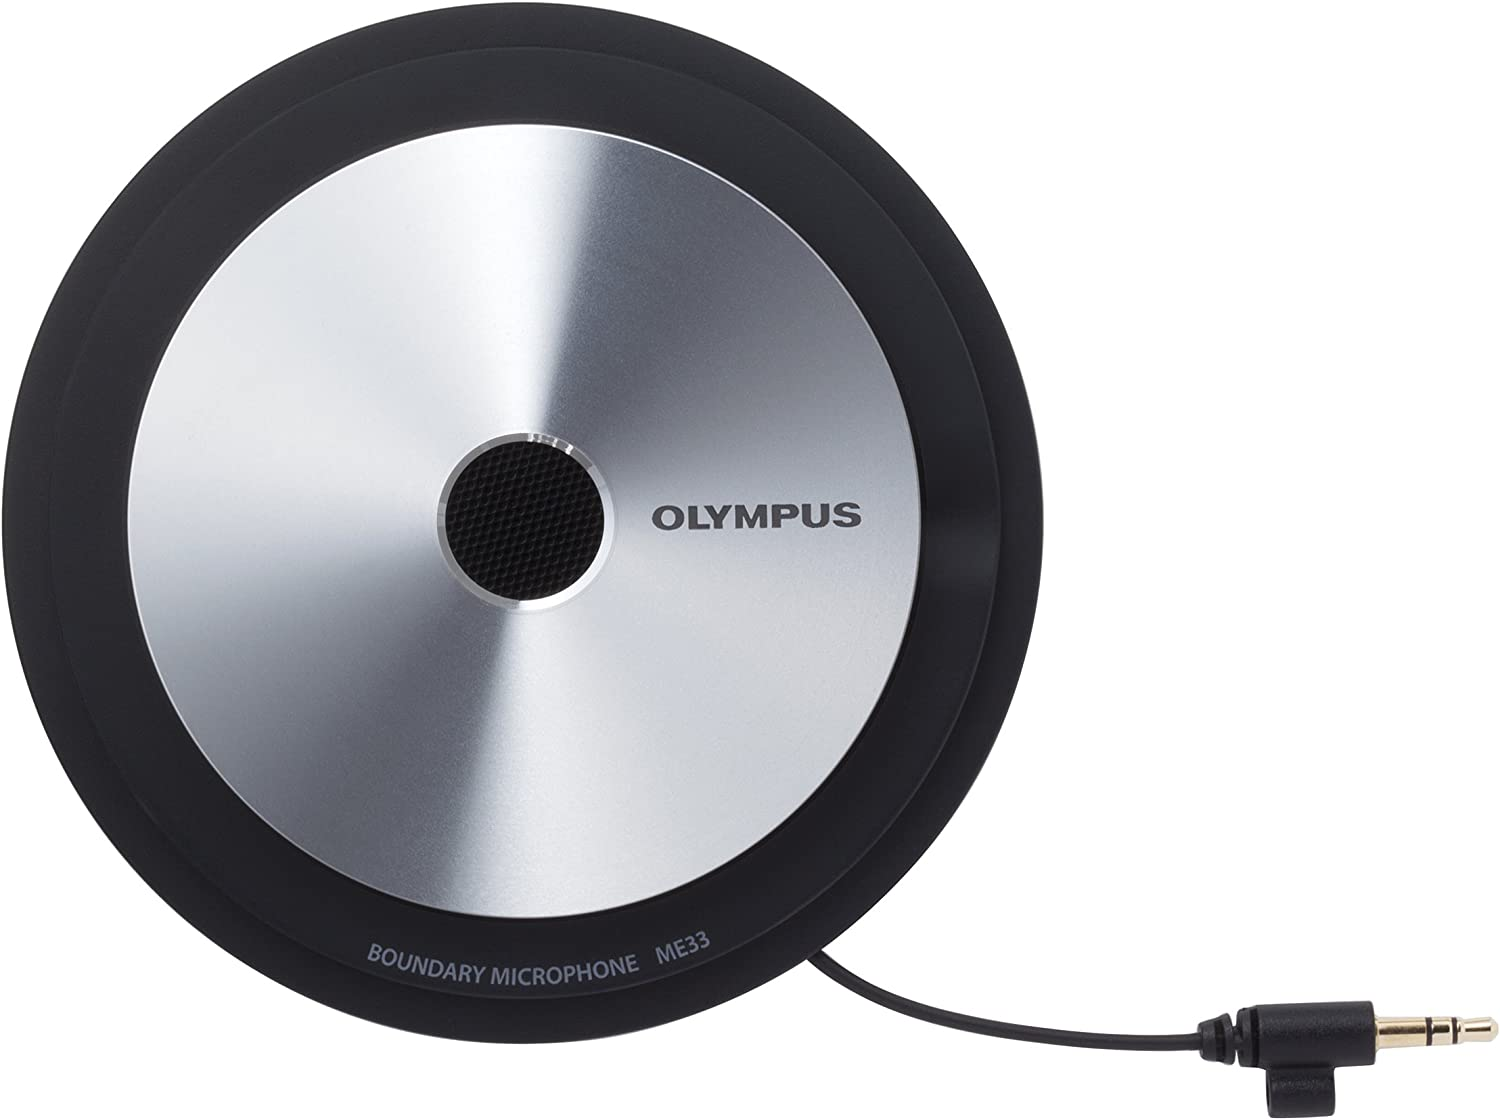 Olympus ME33 Table Top Conference Meeting Omni-directional microphone With daisy chain capabilities